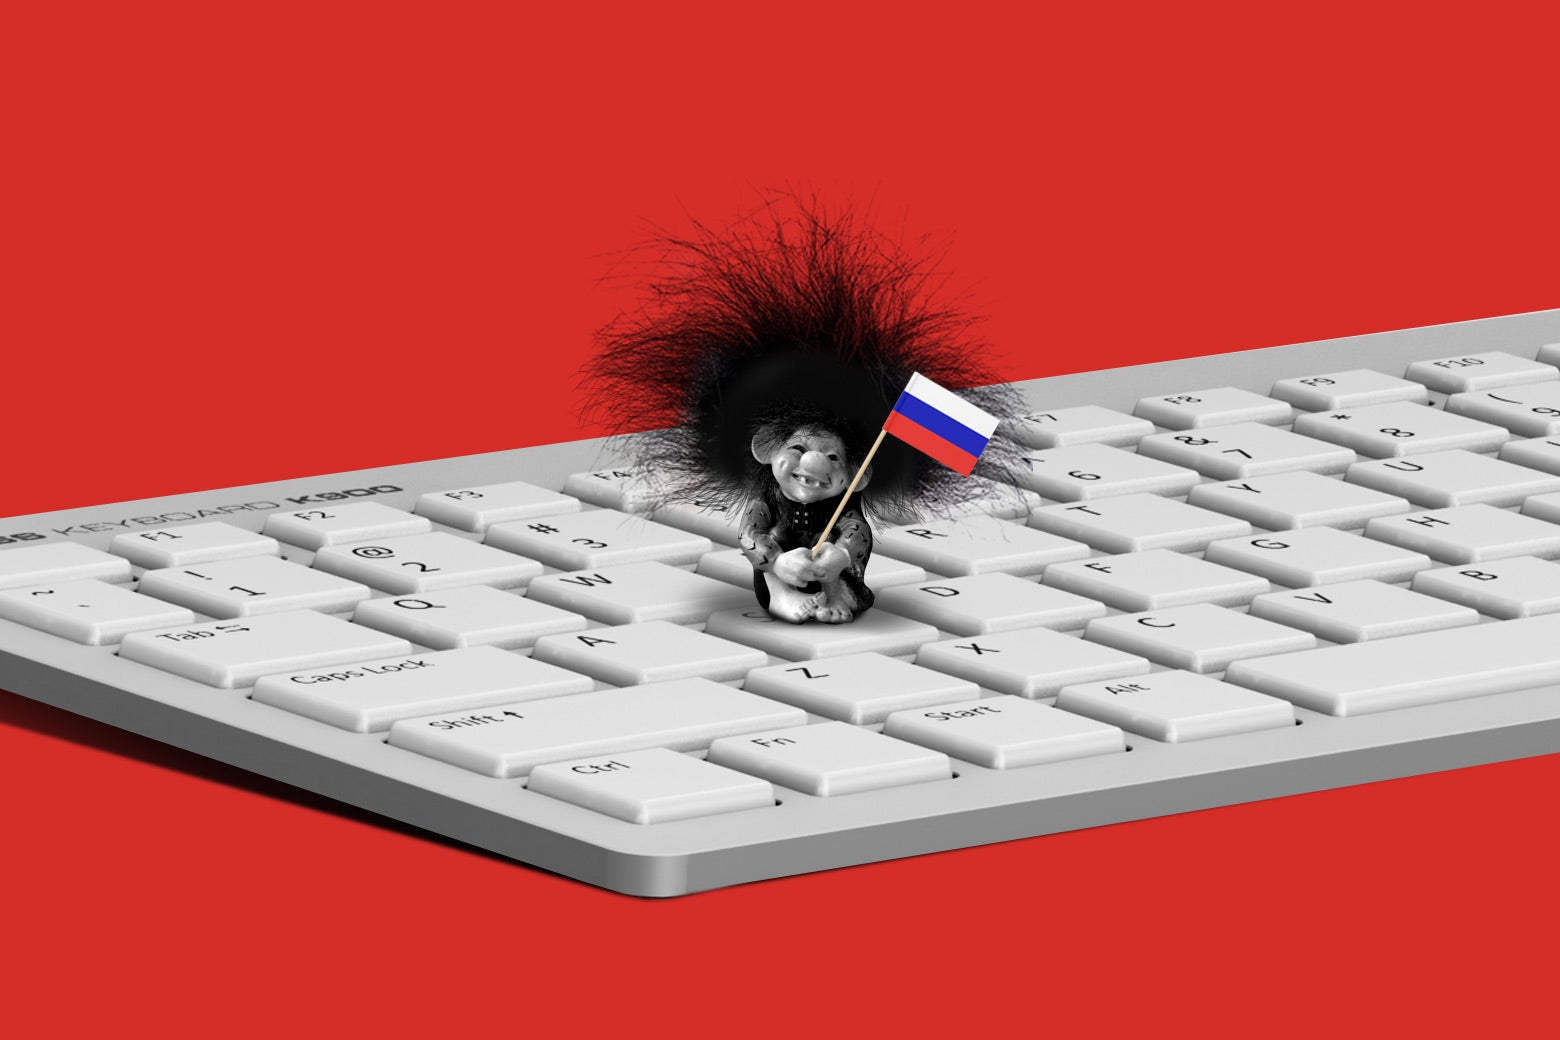 A Troll doll holding a Russian flag while standing on a keyboard.